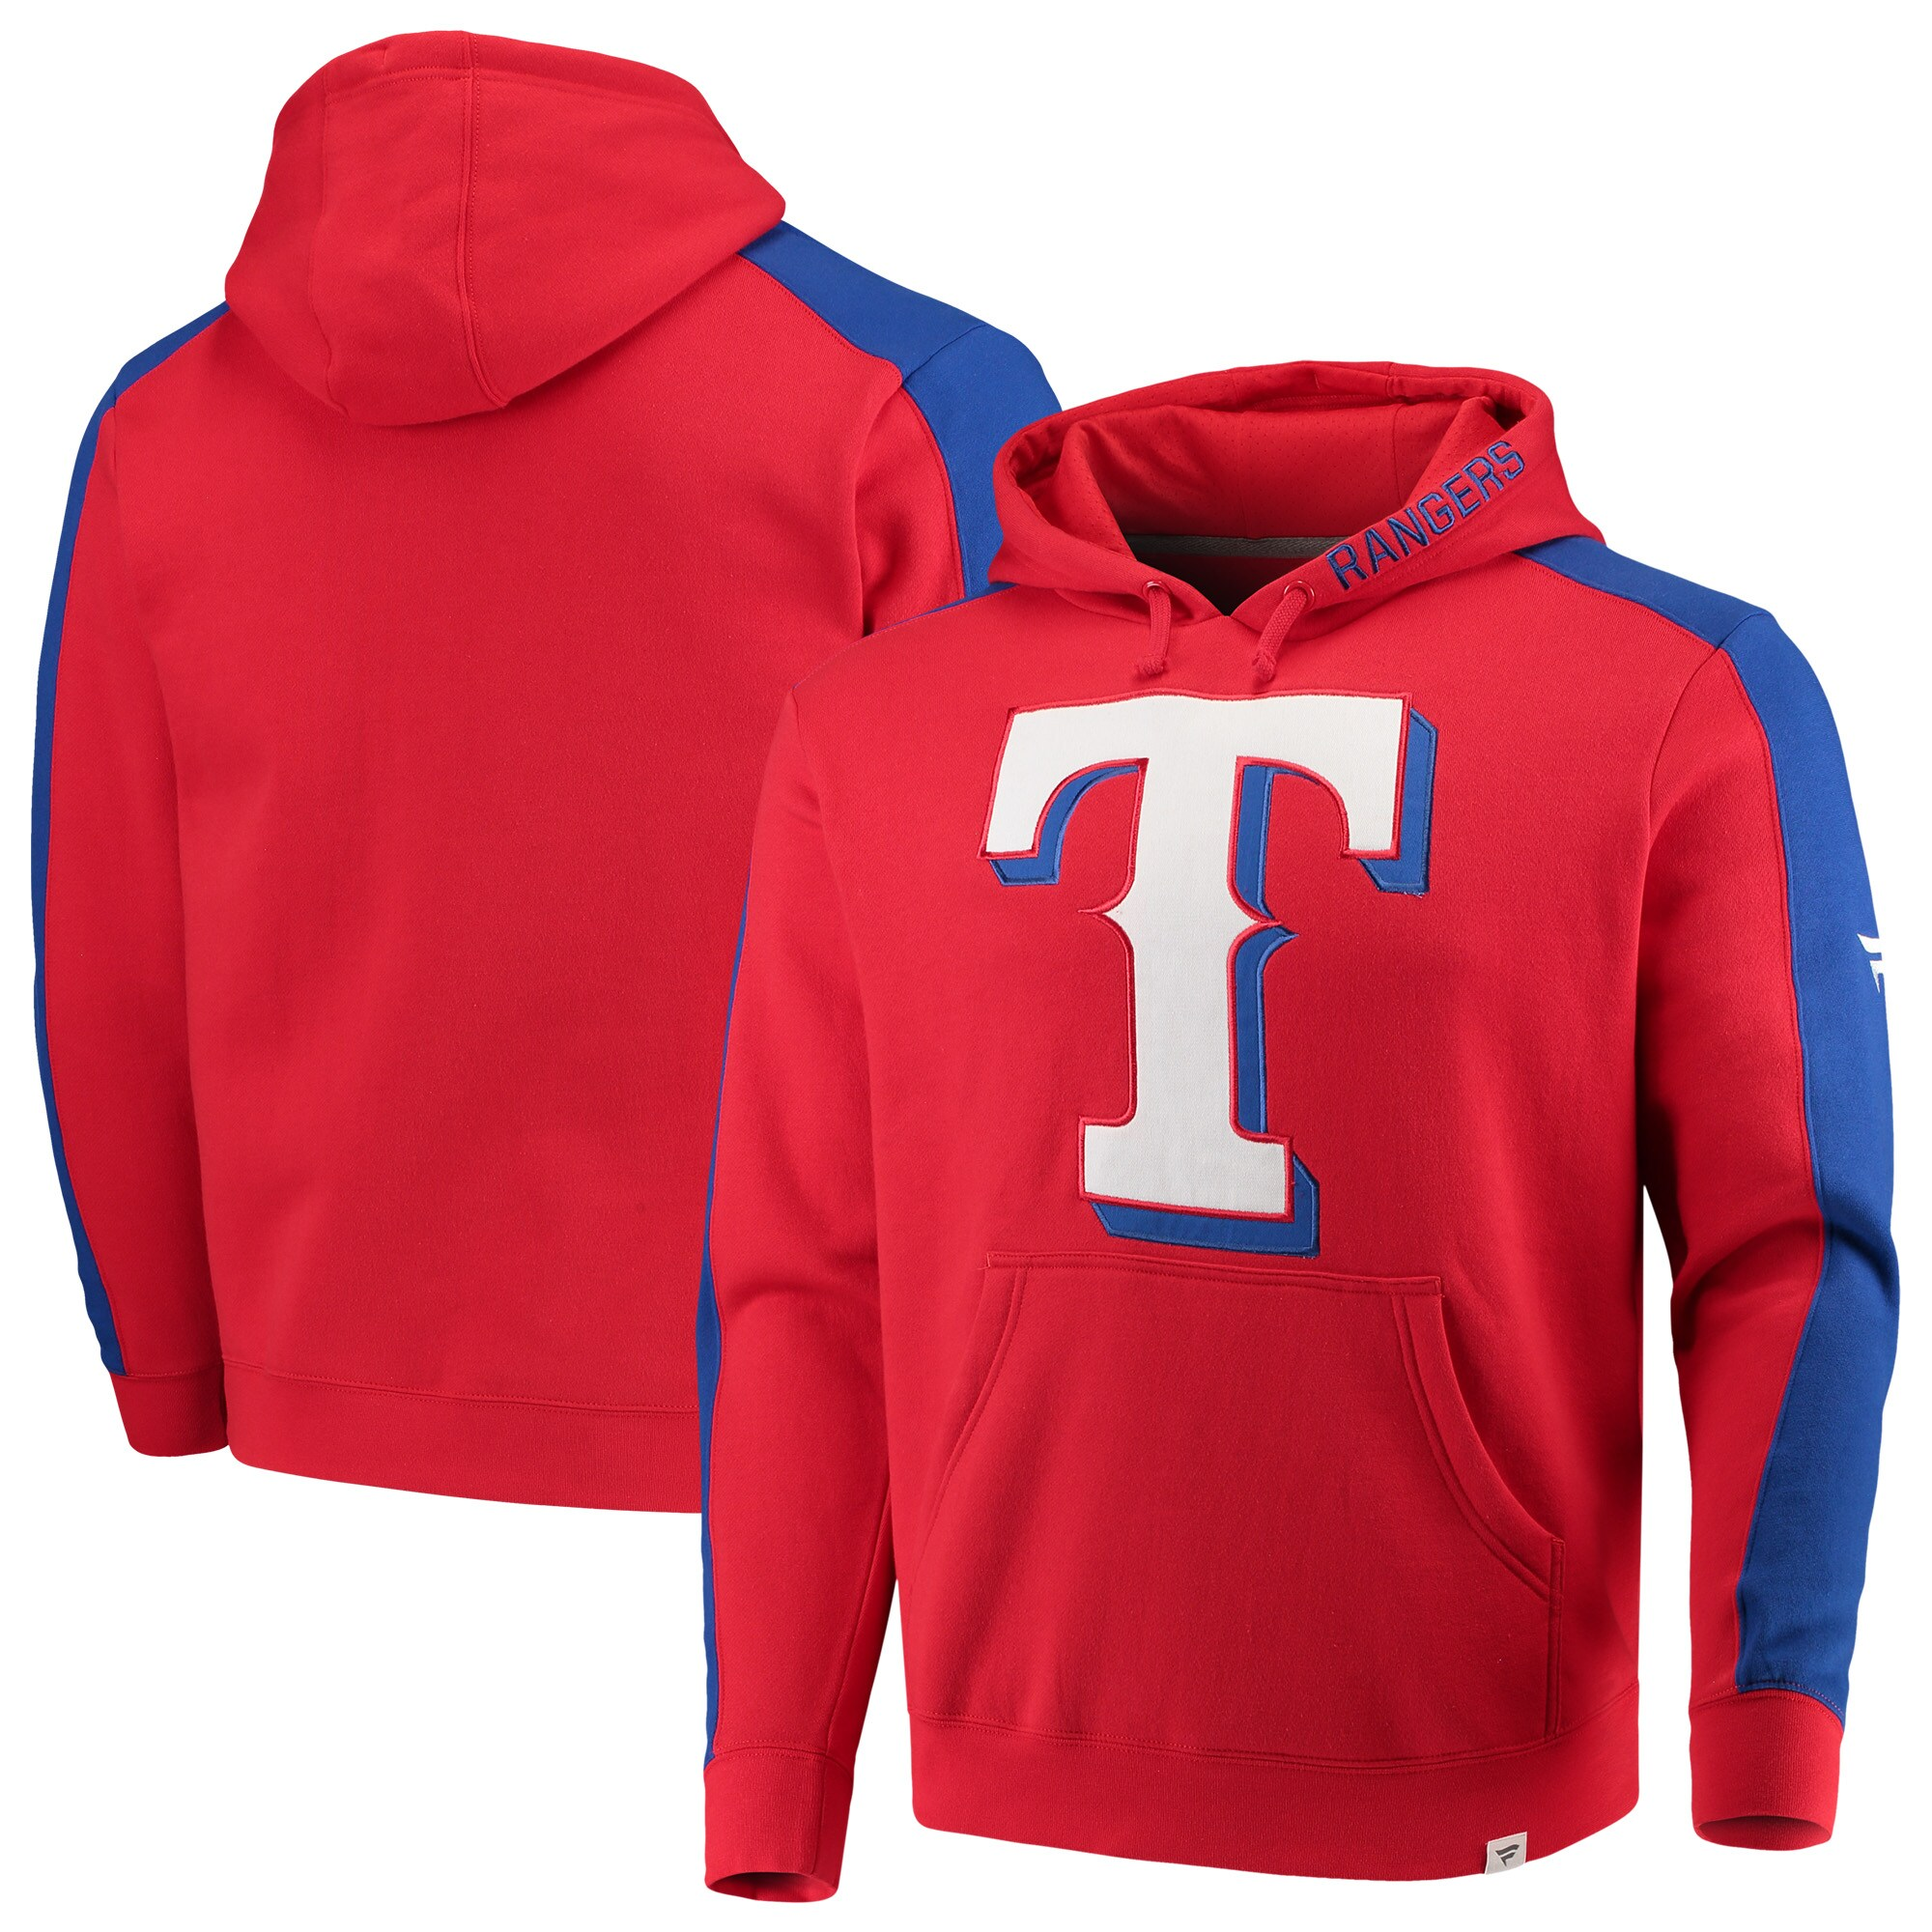 Texas Rangers Fanatics Branded Iconic Fleece Pullover Hoodie - Red/Royal